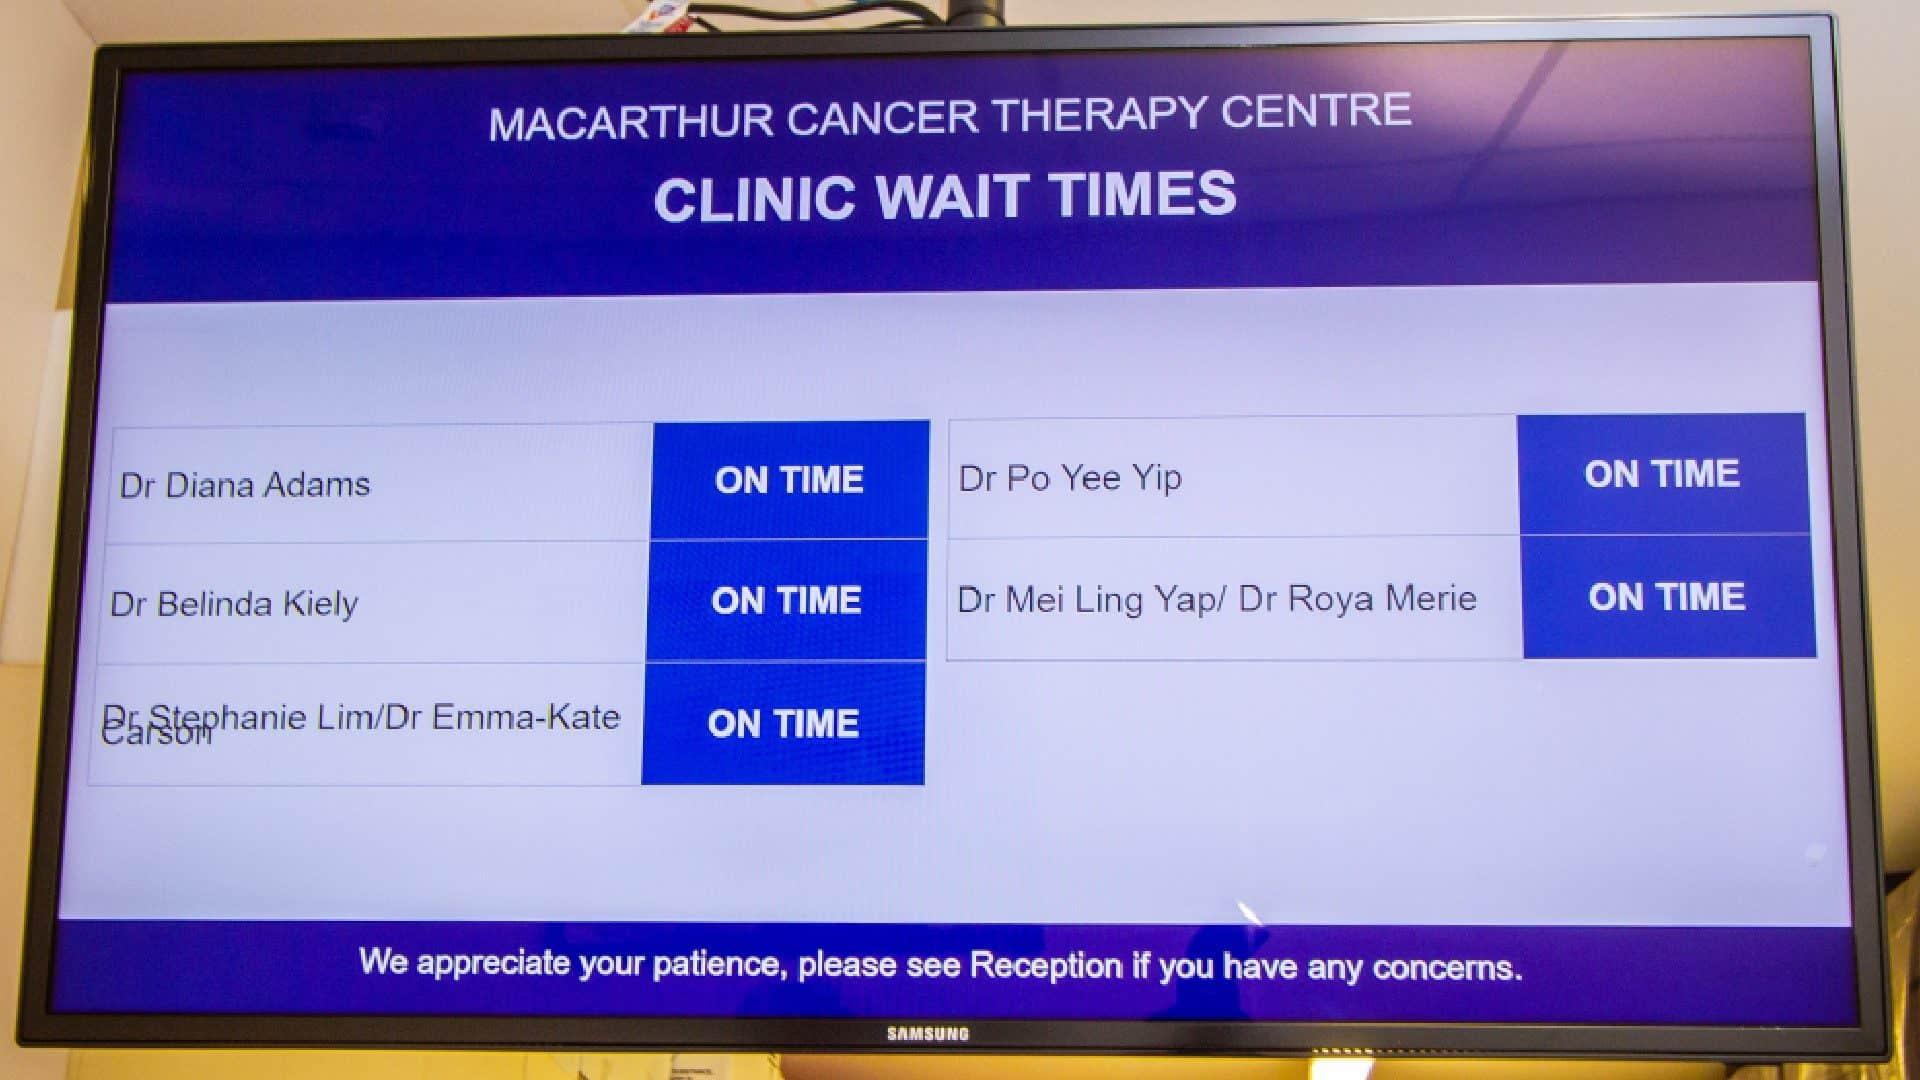 Digital Signage – Cancer Therapy Centre Clinic Wait Times